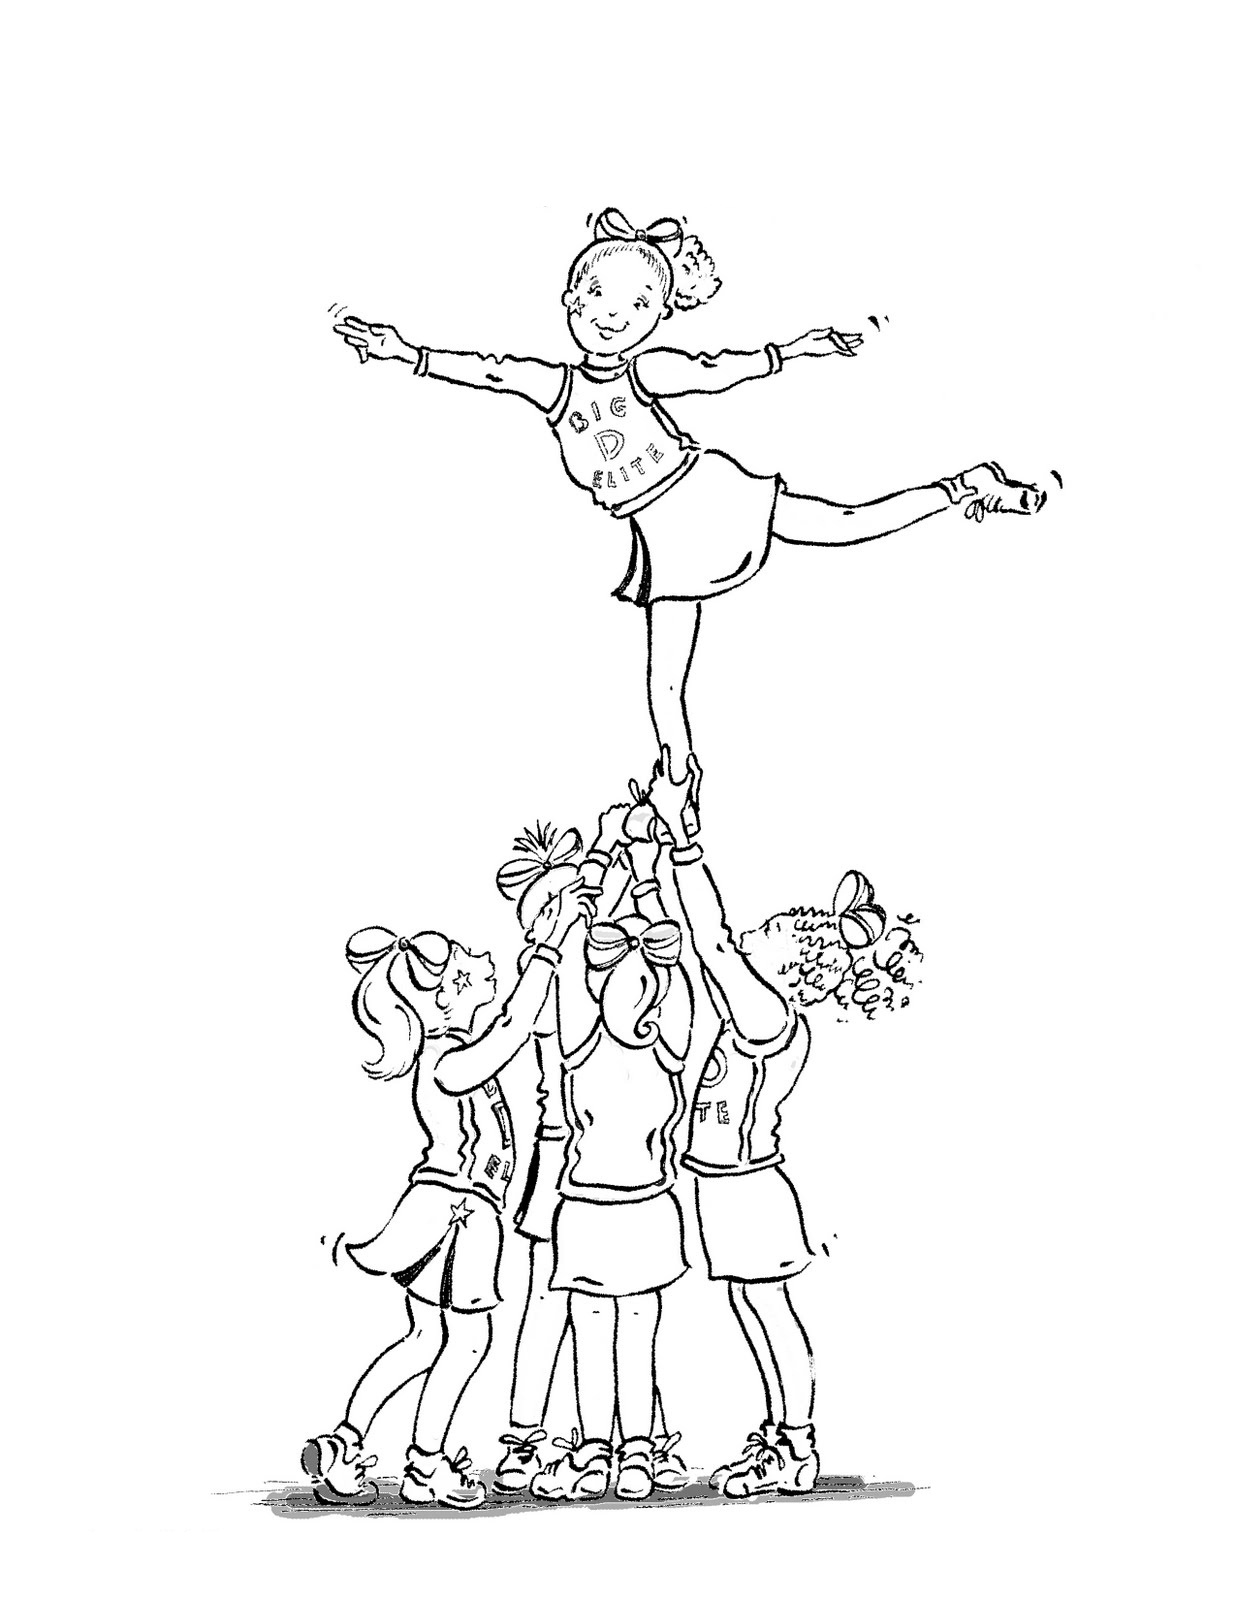 1236x1600 Free Printable Cheerleading Coloring Pages For Kids Cheerleader